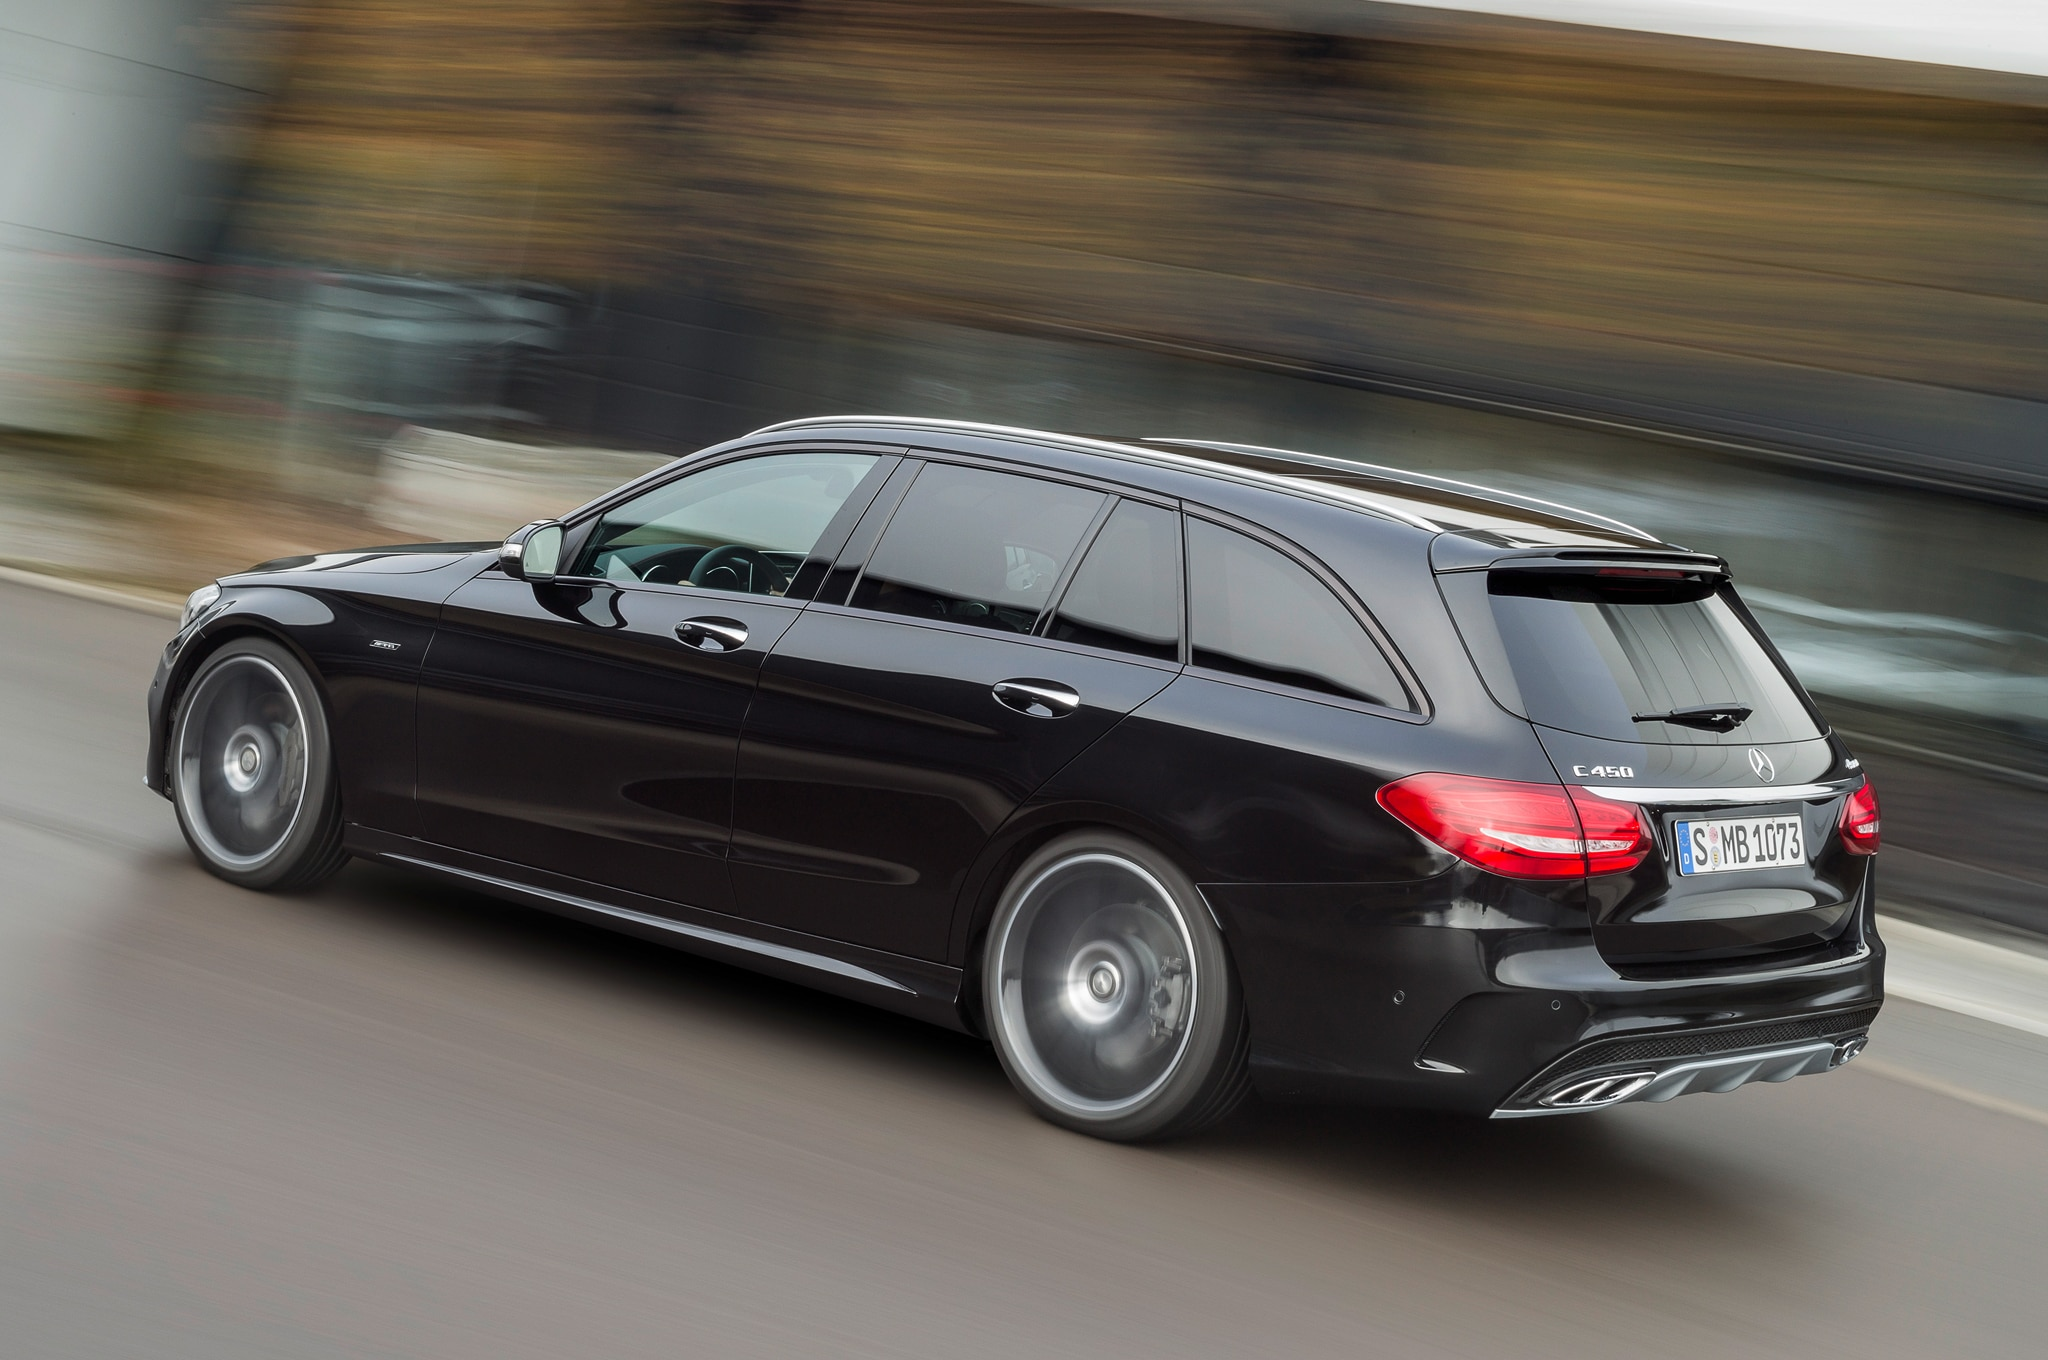 http://st.automobilemag.com/uploads/sites/11/2015/01/2016-Mercedes-Benz-C450-AMG-4Matic-wagon-rear-motion-view.jpg